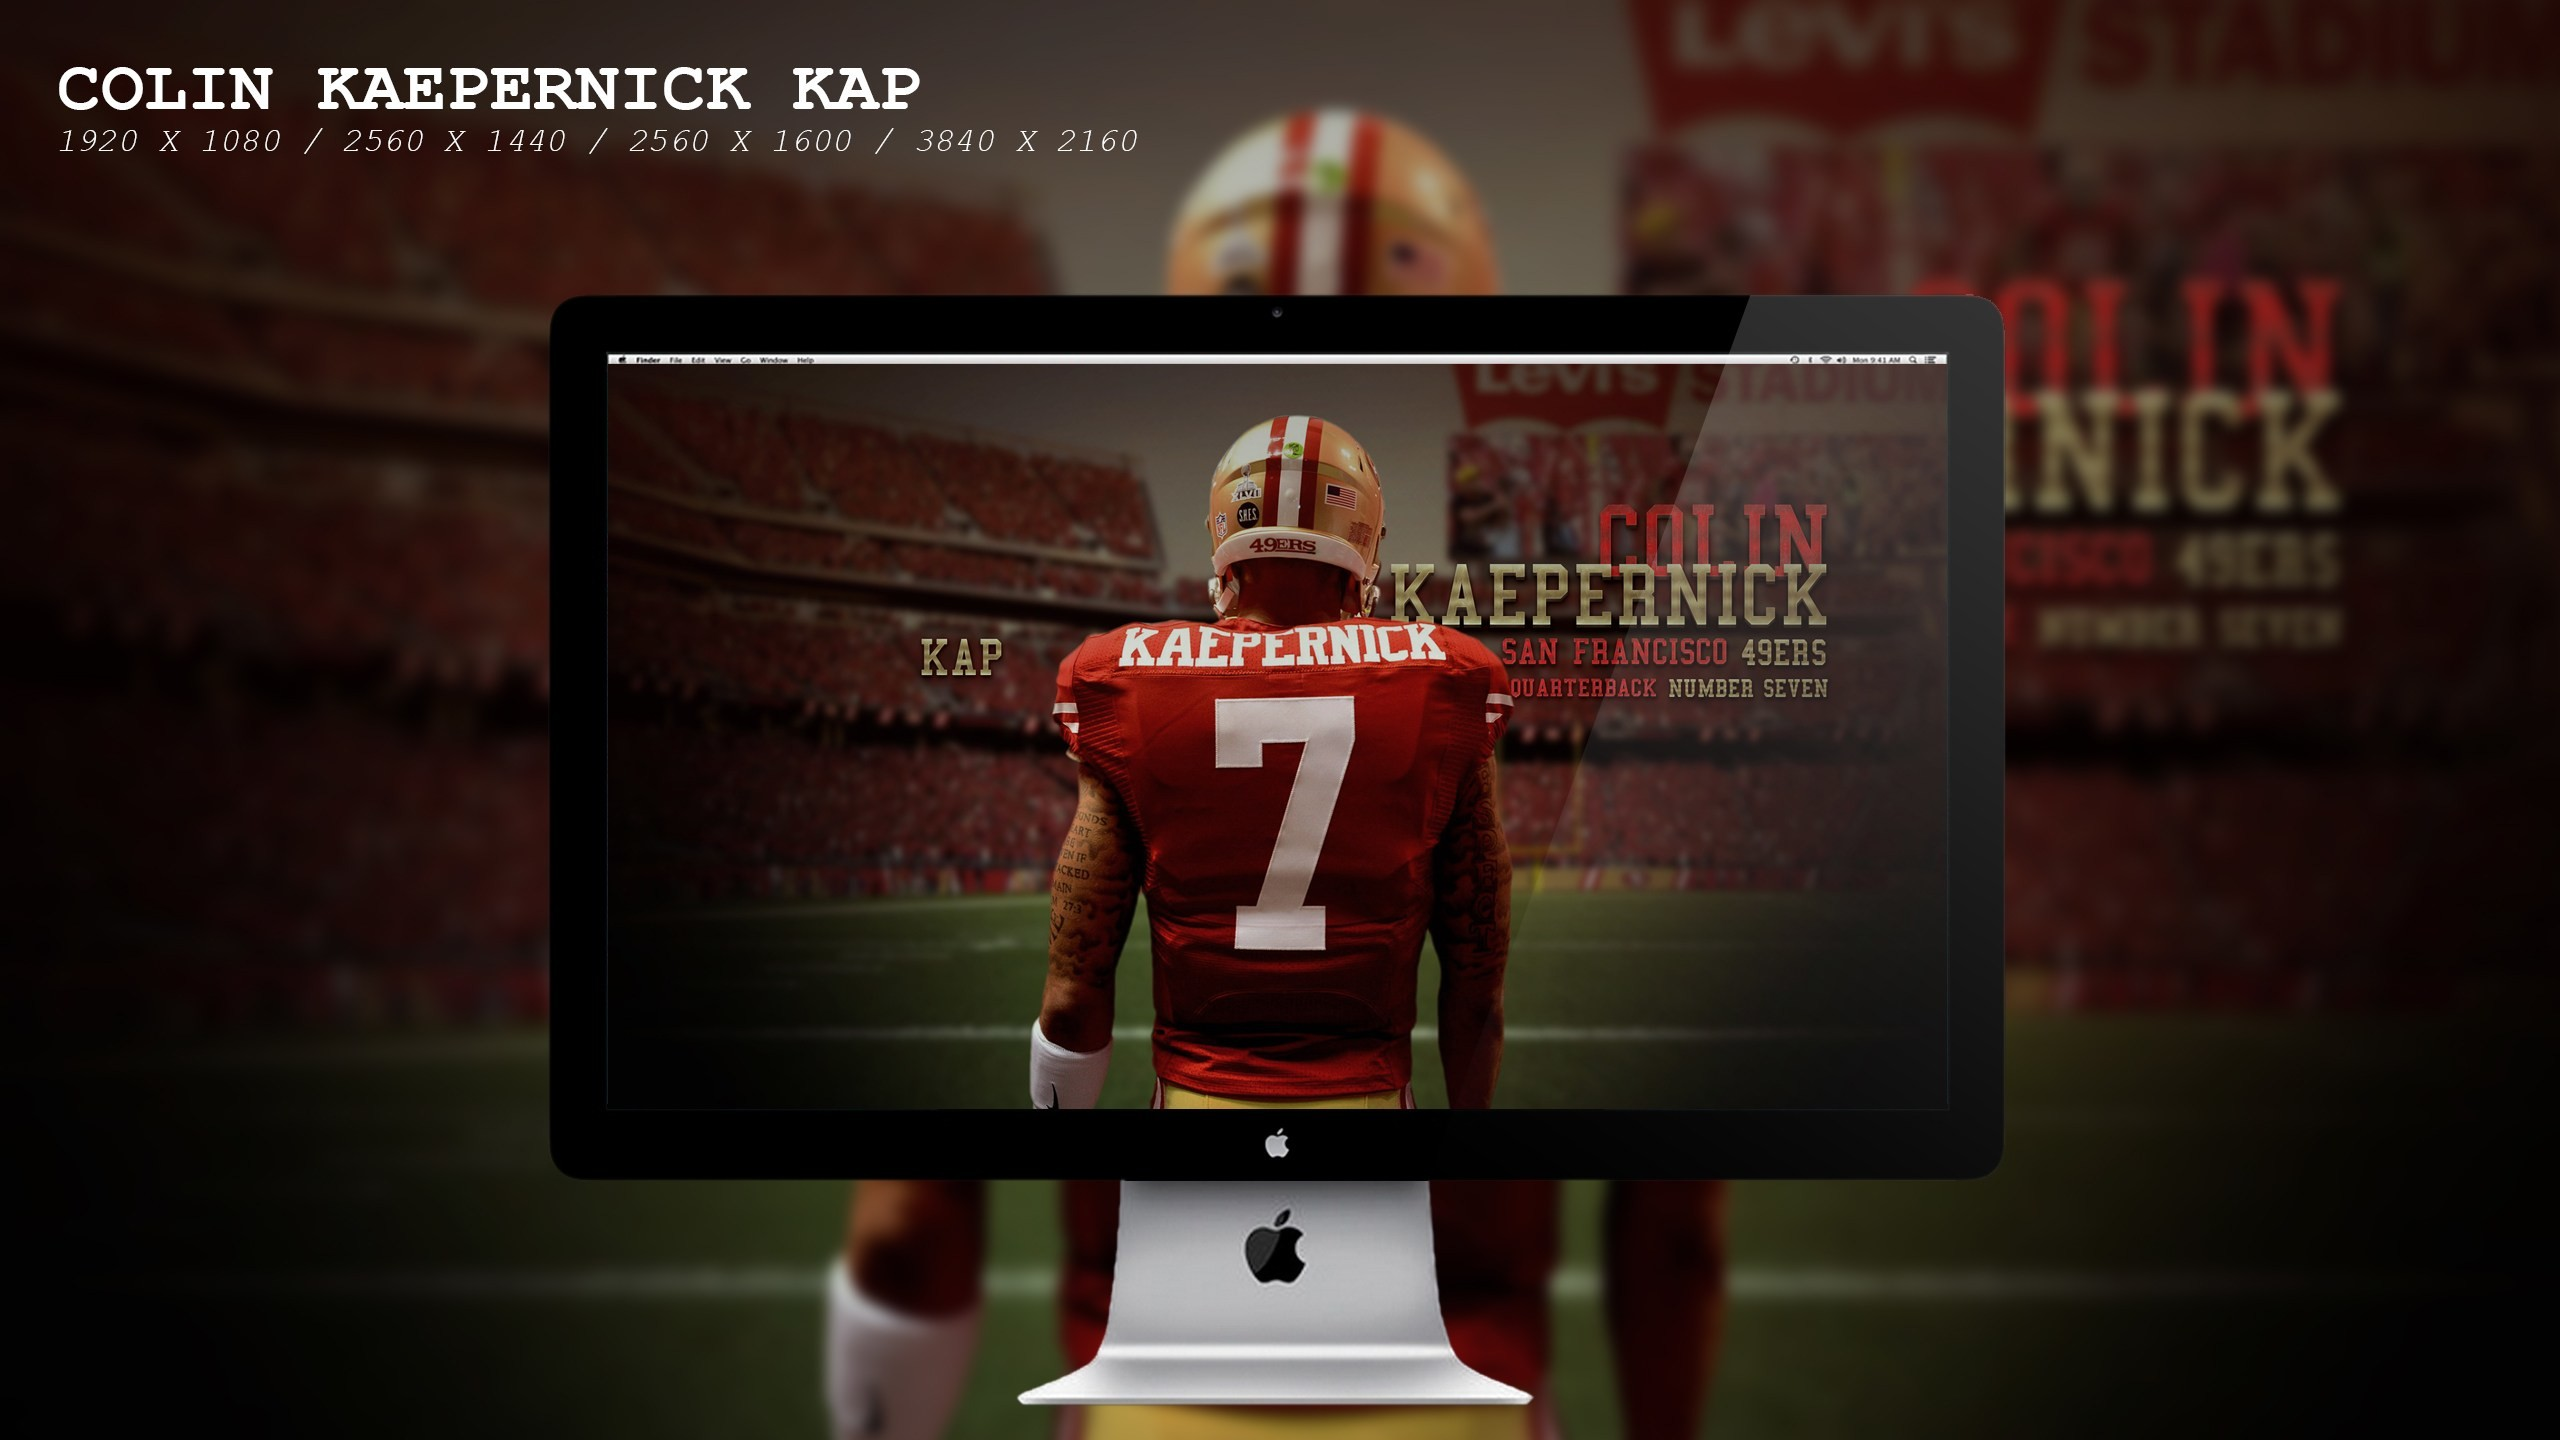 2560x1440 ... Great Colin Kaepernick Images Wallpaper Amazing free HD 3D wallpapers  collection-You can download best